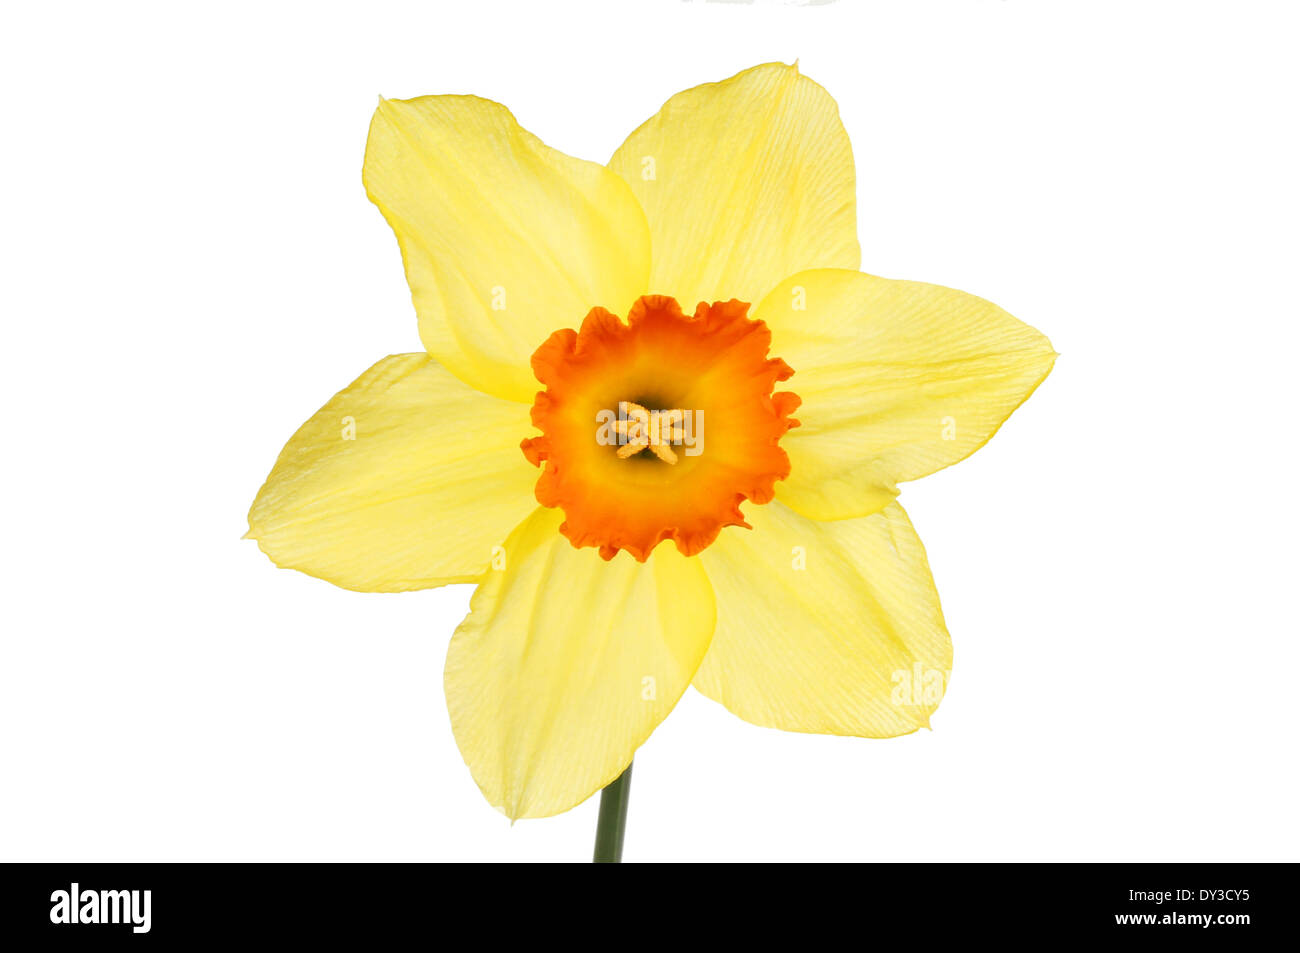 Yellow Daffodil Flower With An Orange Center Isolated Against White